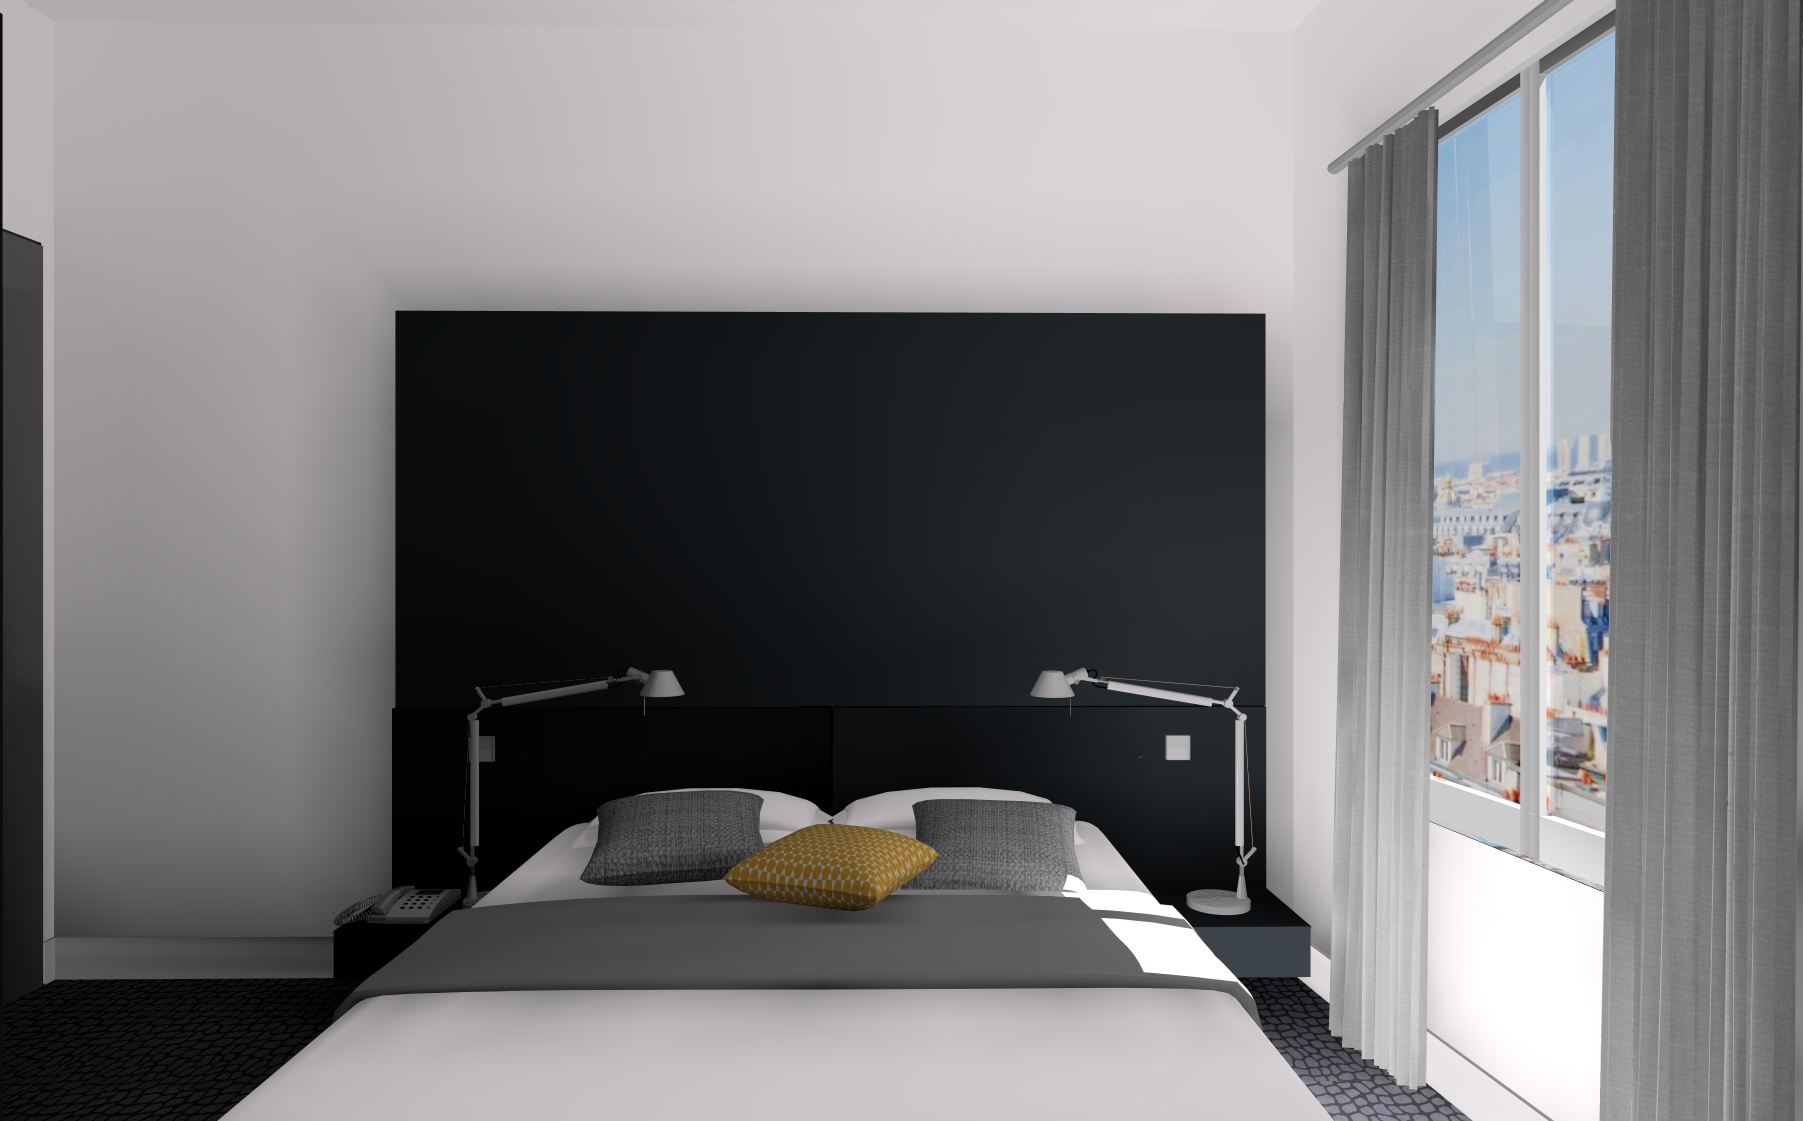 architectes et d coratrices pour vos simulations 3d. Black Bedroom Furniture Sets. Home Design Ideas